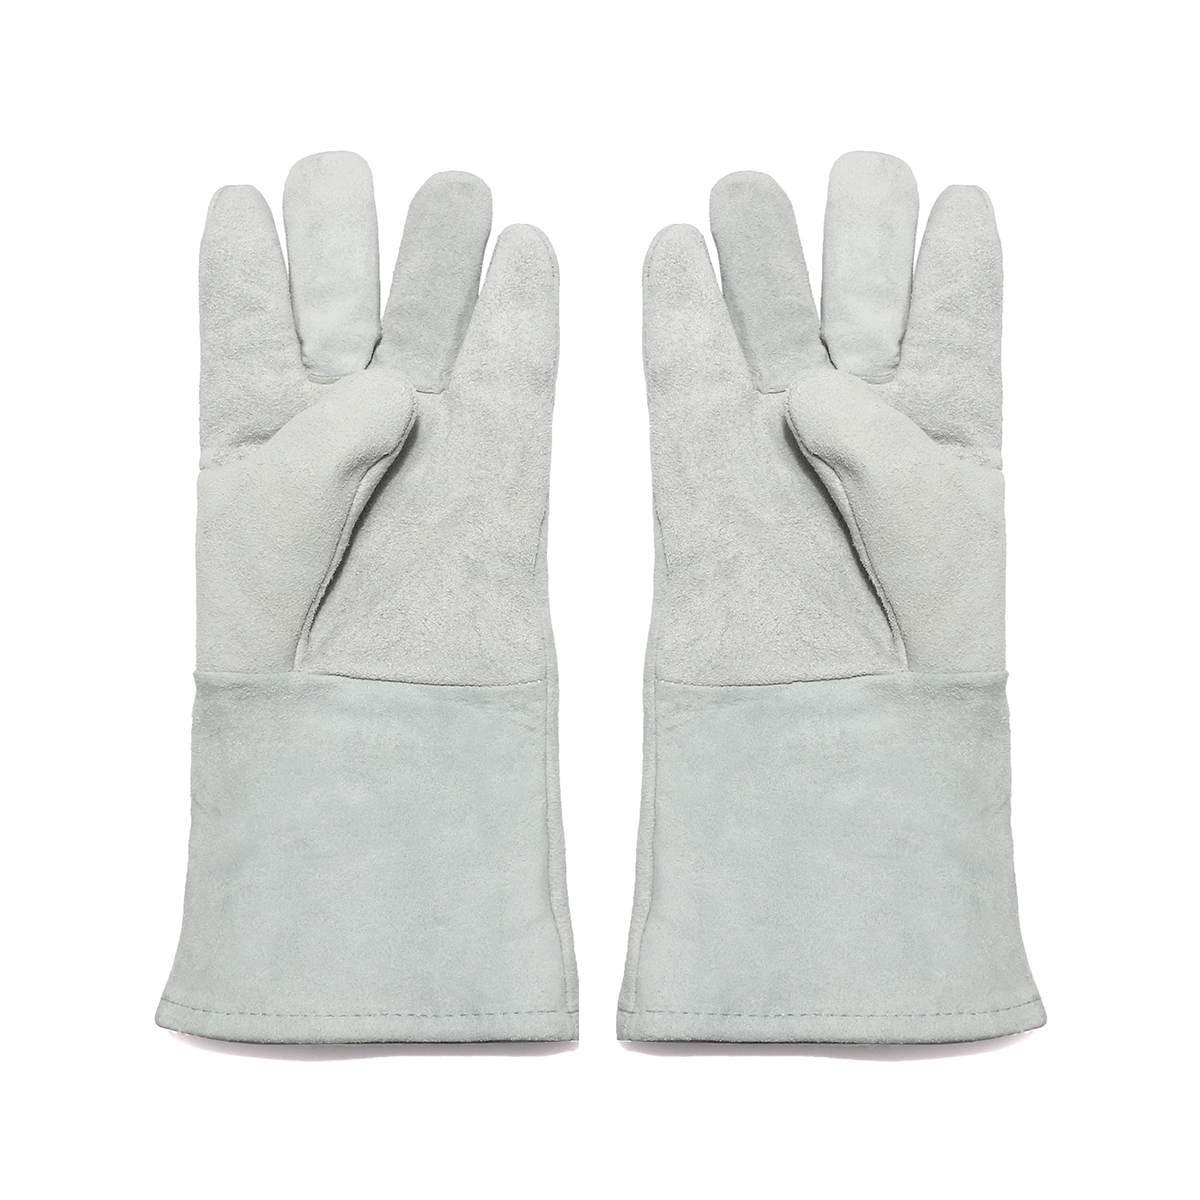 13 14 Inch Heat Resistant Melting Furnace Welding Gloves Weld Refining Casting Gold Silver